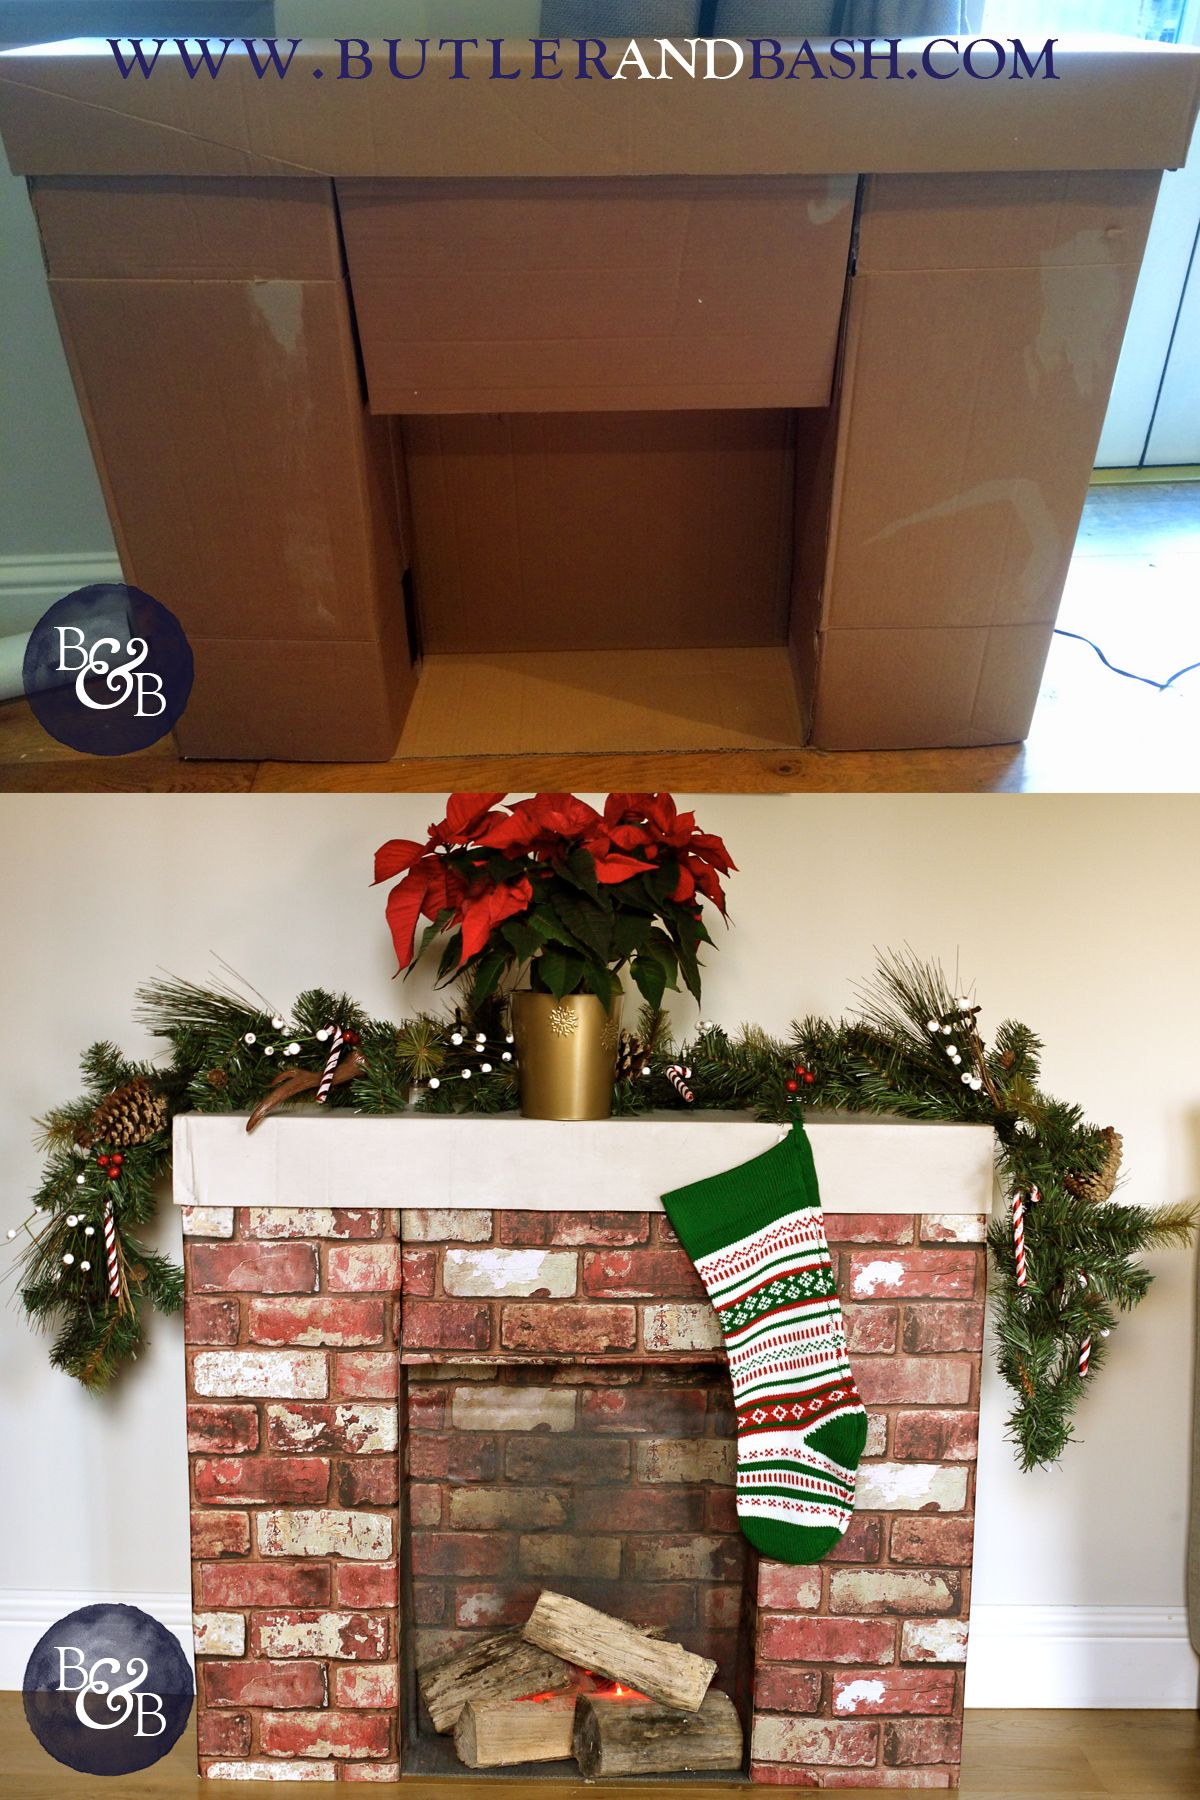 Faux Fireplace made from cardboard boxes. Coved with brick effect wall paper. Red led lights placed between the logos to create a warm glow. Perfect for Santa